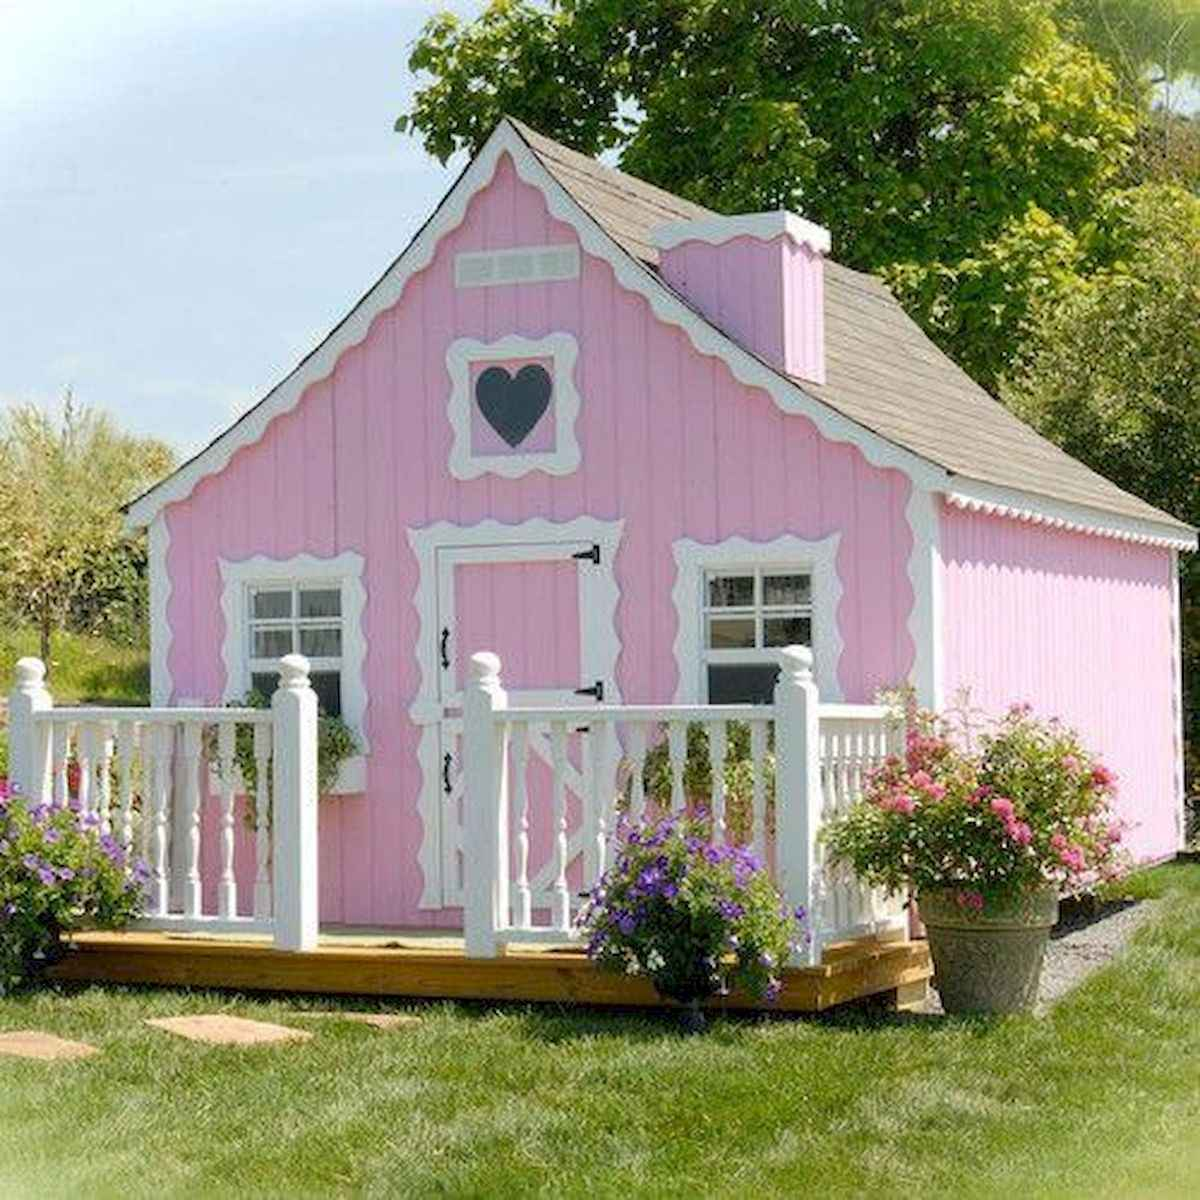 60 Beautiful Tiny House Plans Small Cottages Design Ideas (30)